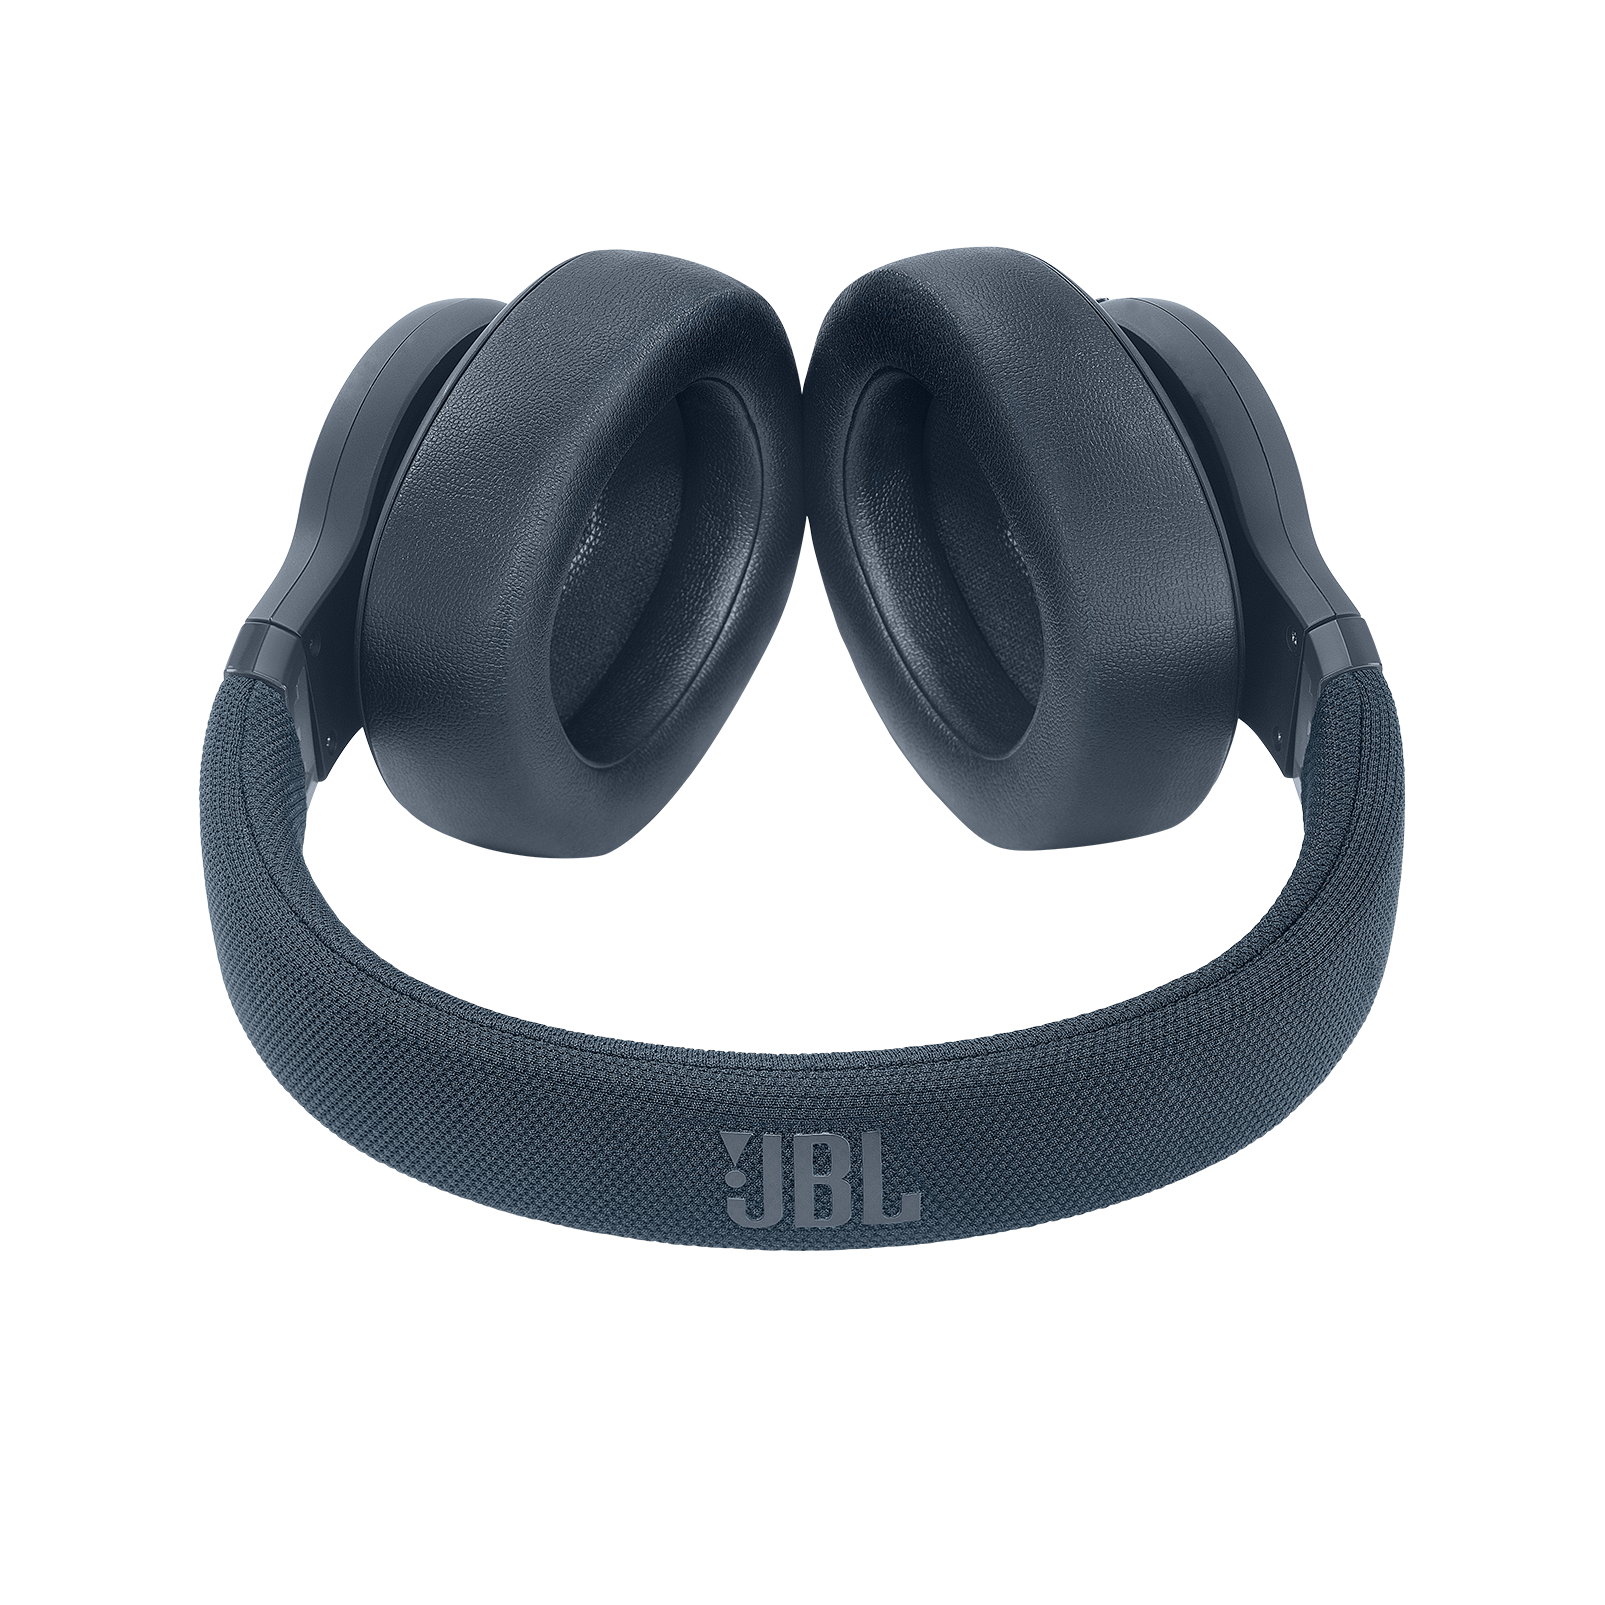 JBL E65BTNC - Blue - Wireless over-ear noise-cancelling headphones - Detailshot 1